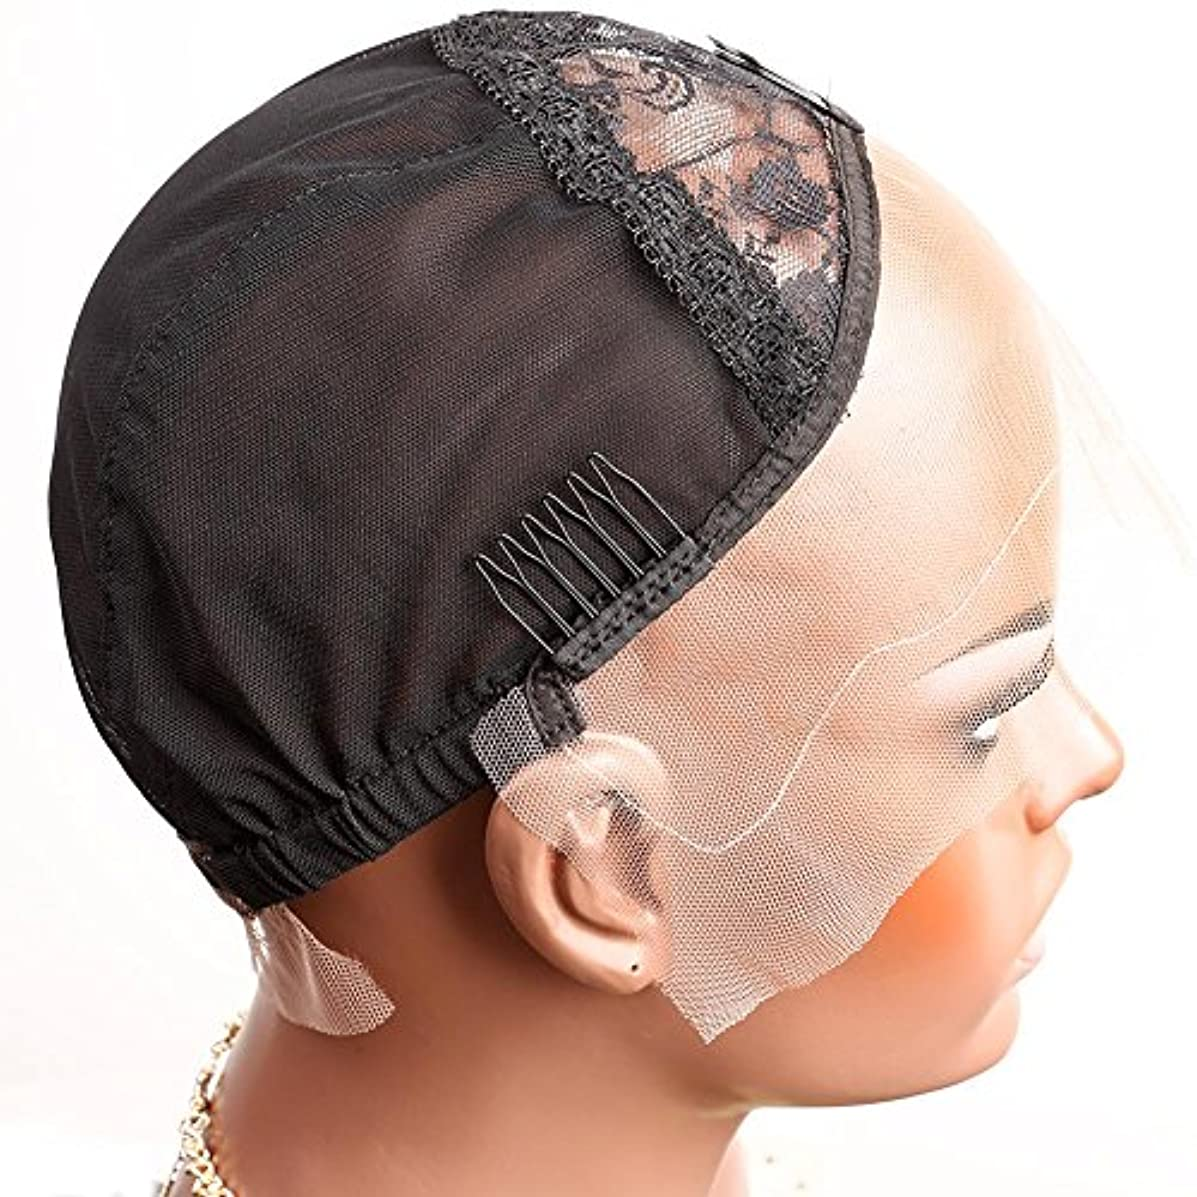 Bella Hair Breathable Lace Front Wig Cap for Making Wigs with Adjustable Straps and Combs Swiss Lace Black Medium Size